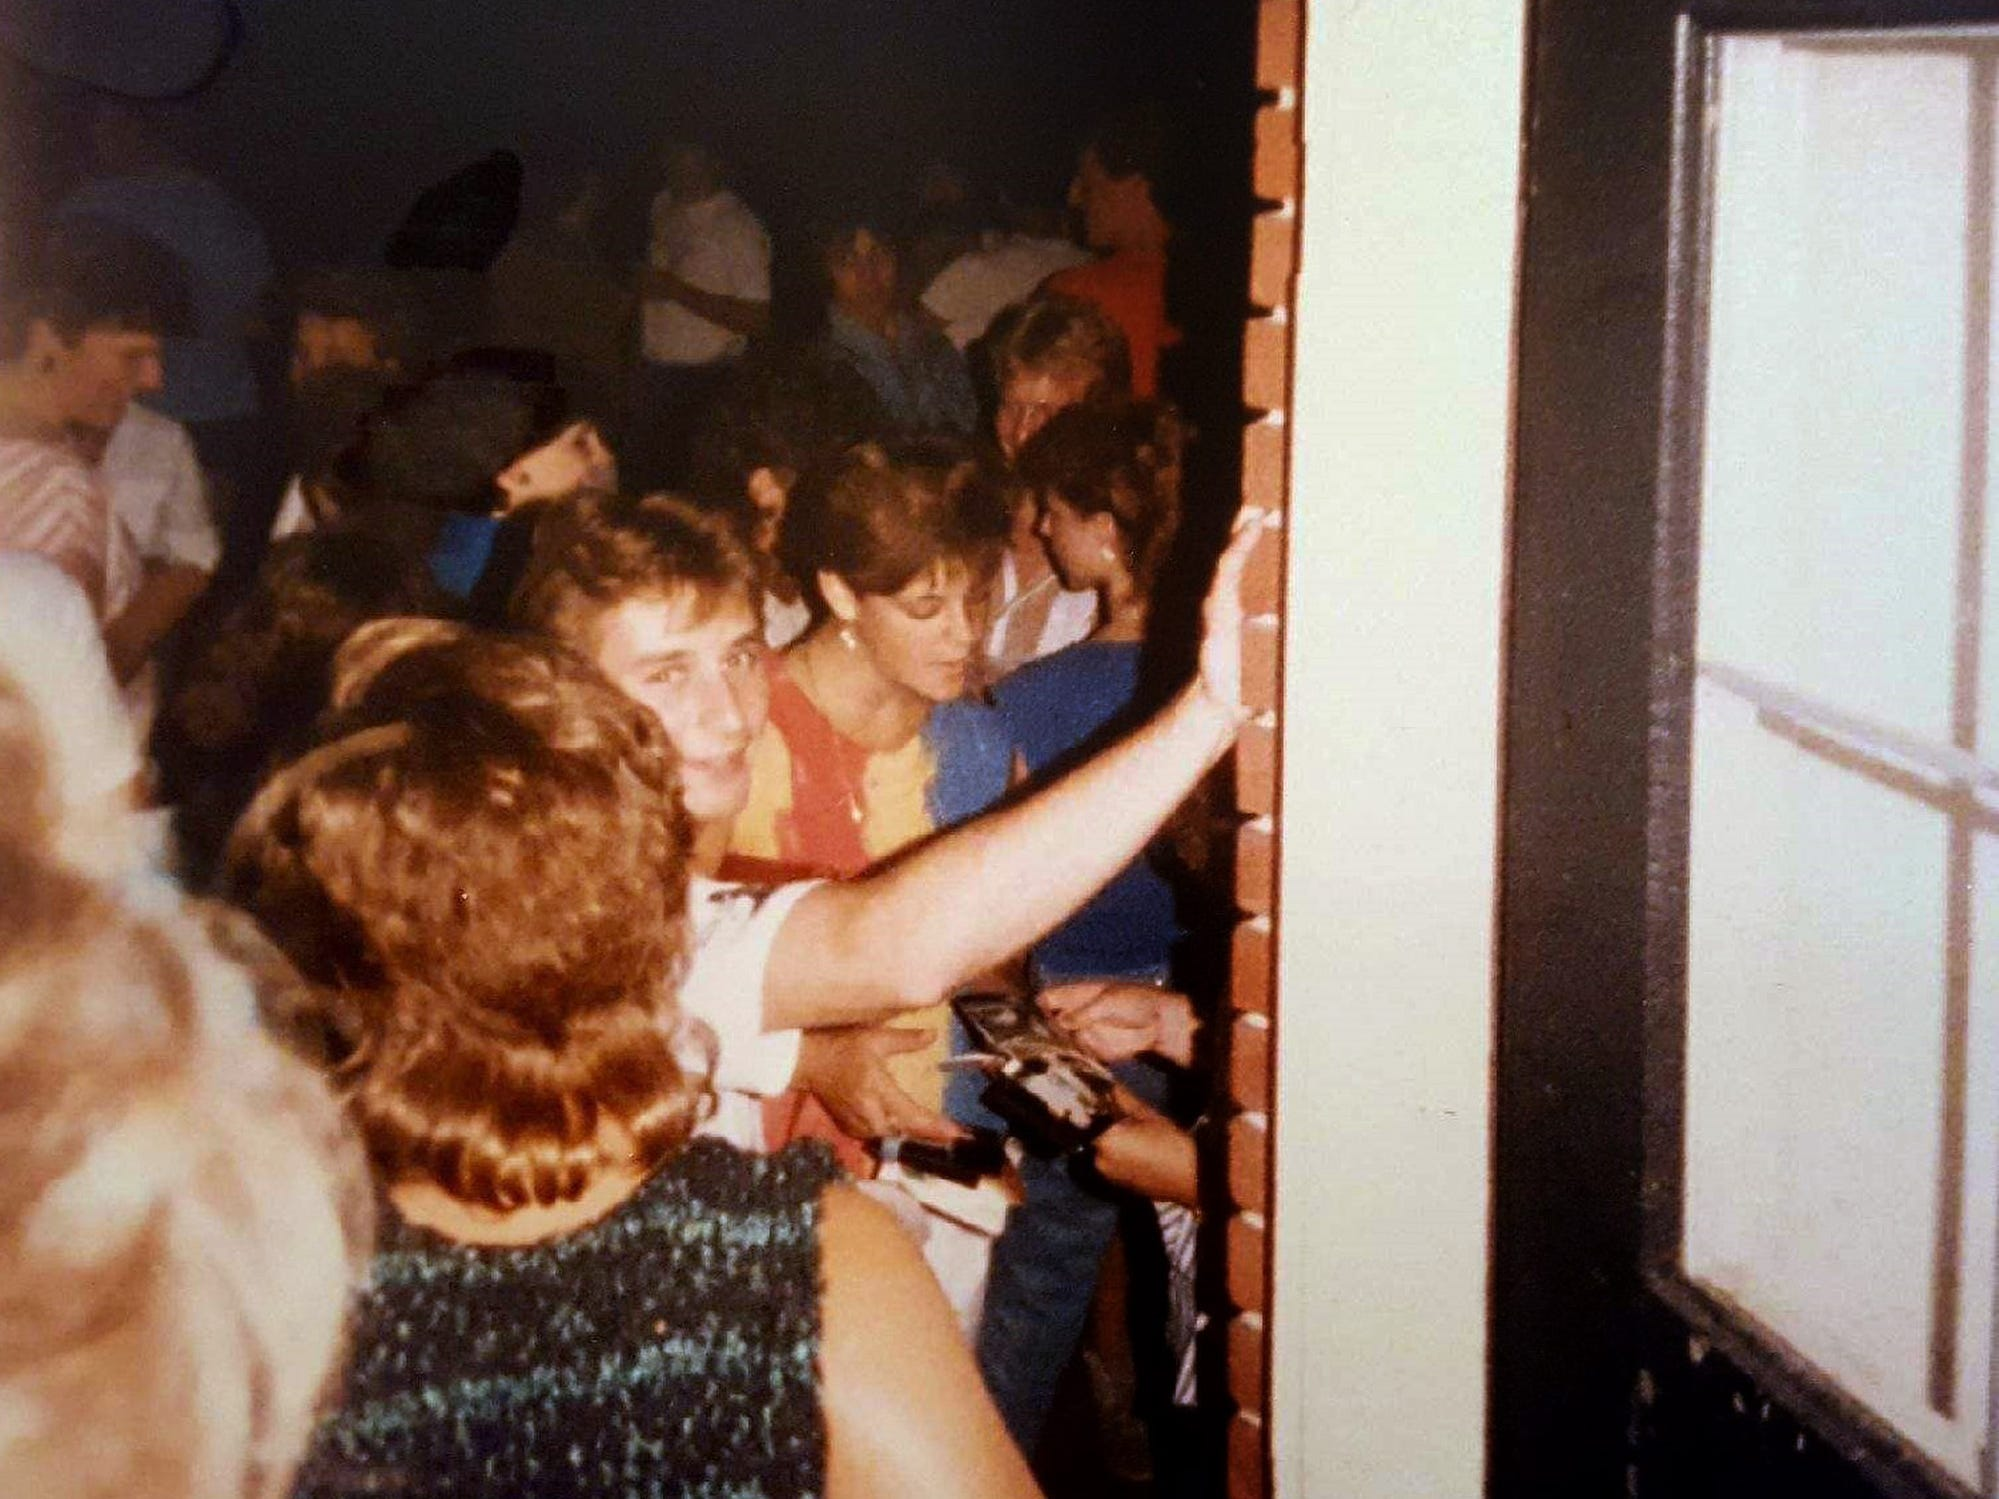 Young revelers spilled from the O'Neill home into the backyard at one of the crowded parties there.